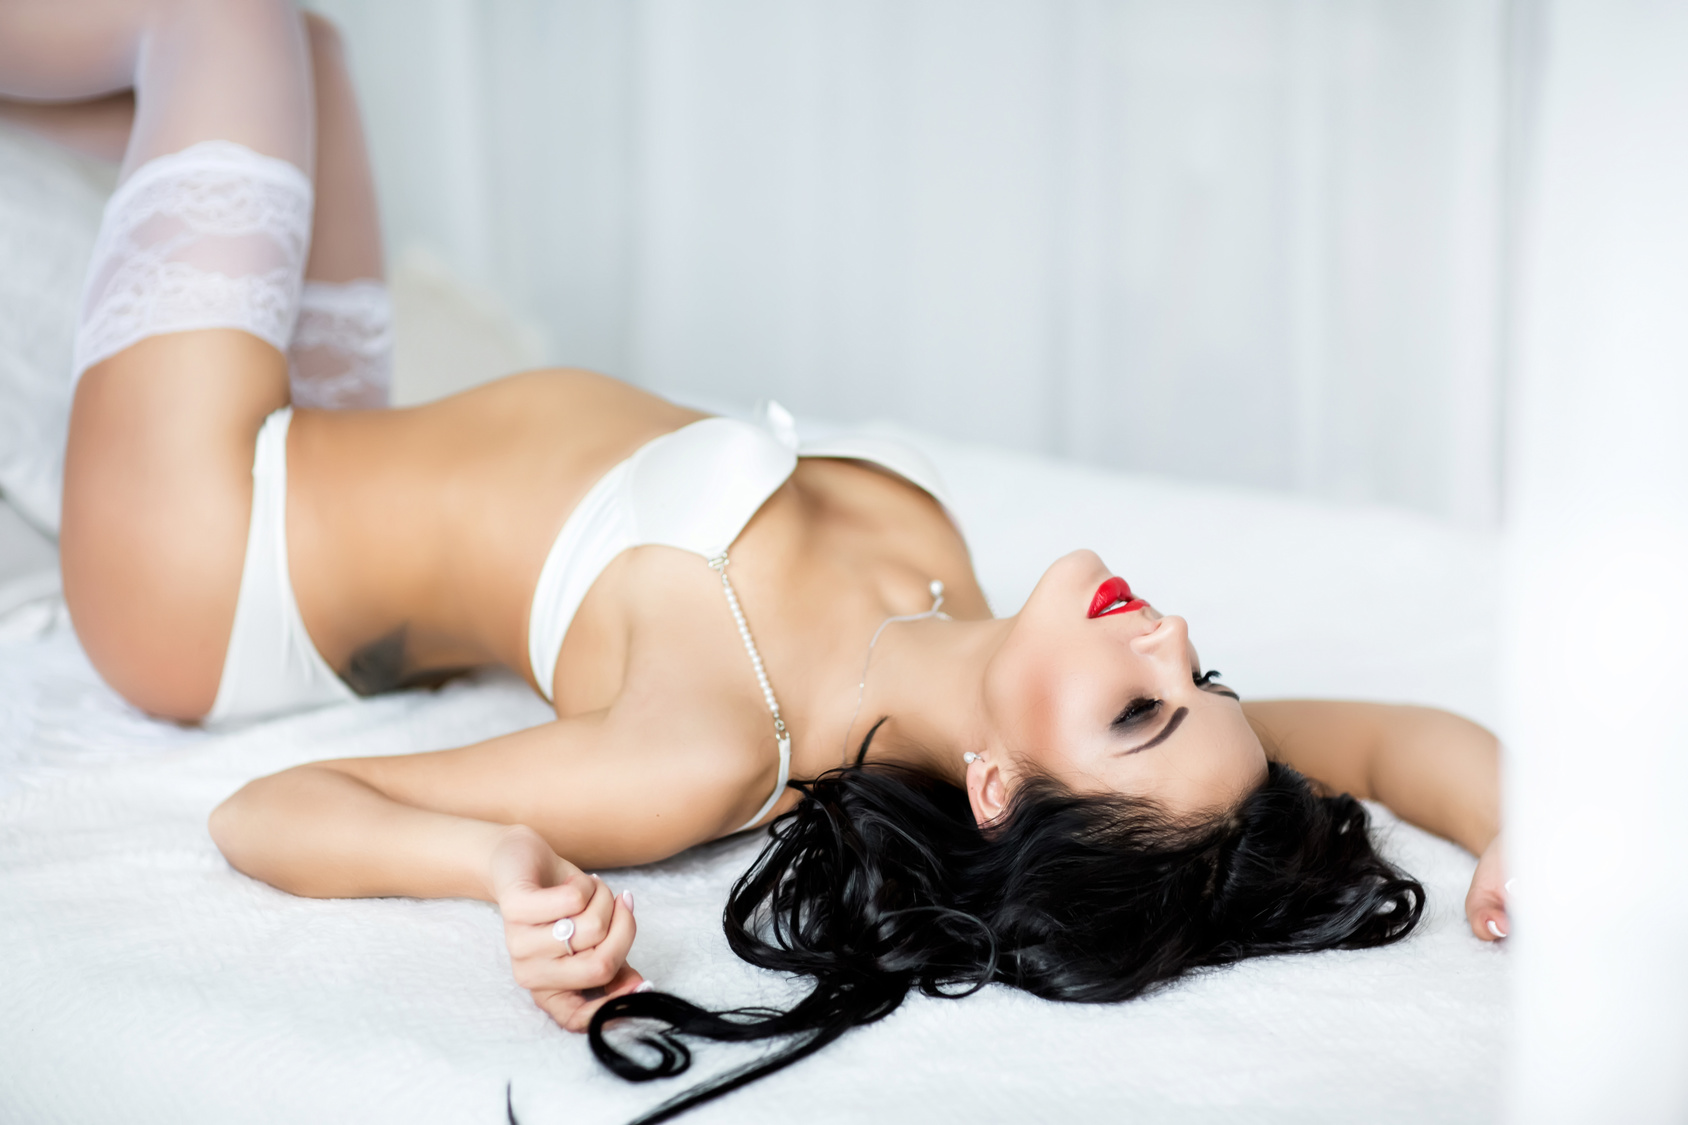 erotic thai body massage escort  prague